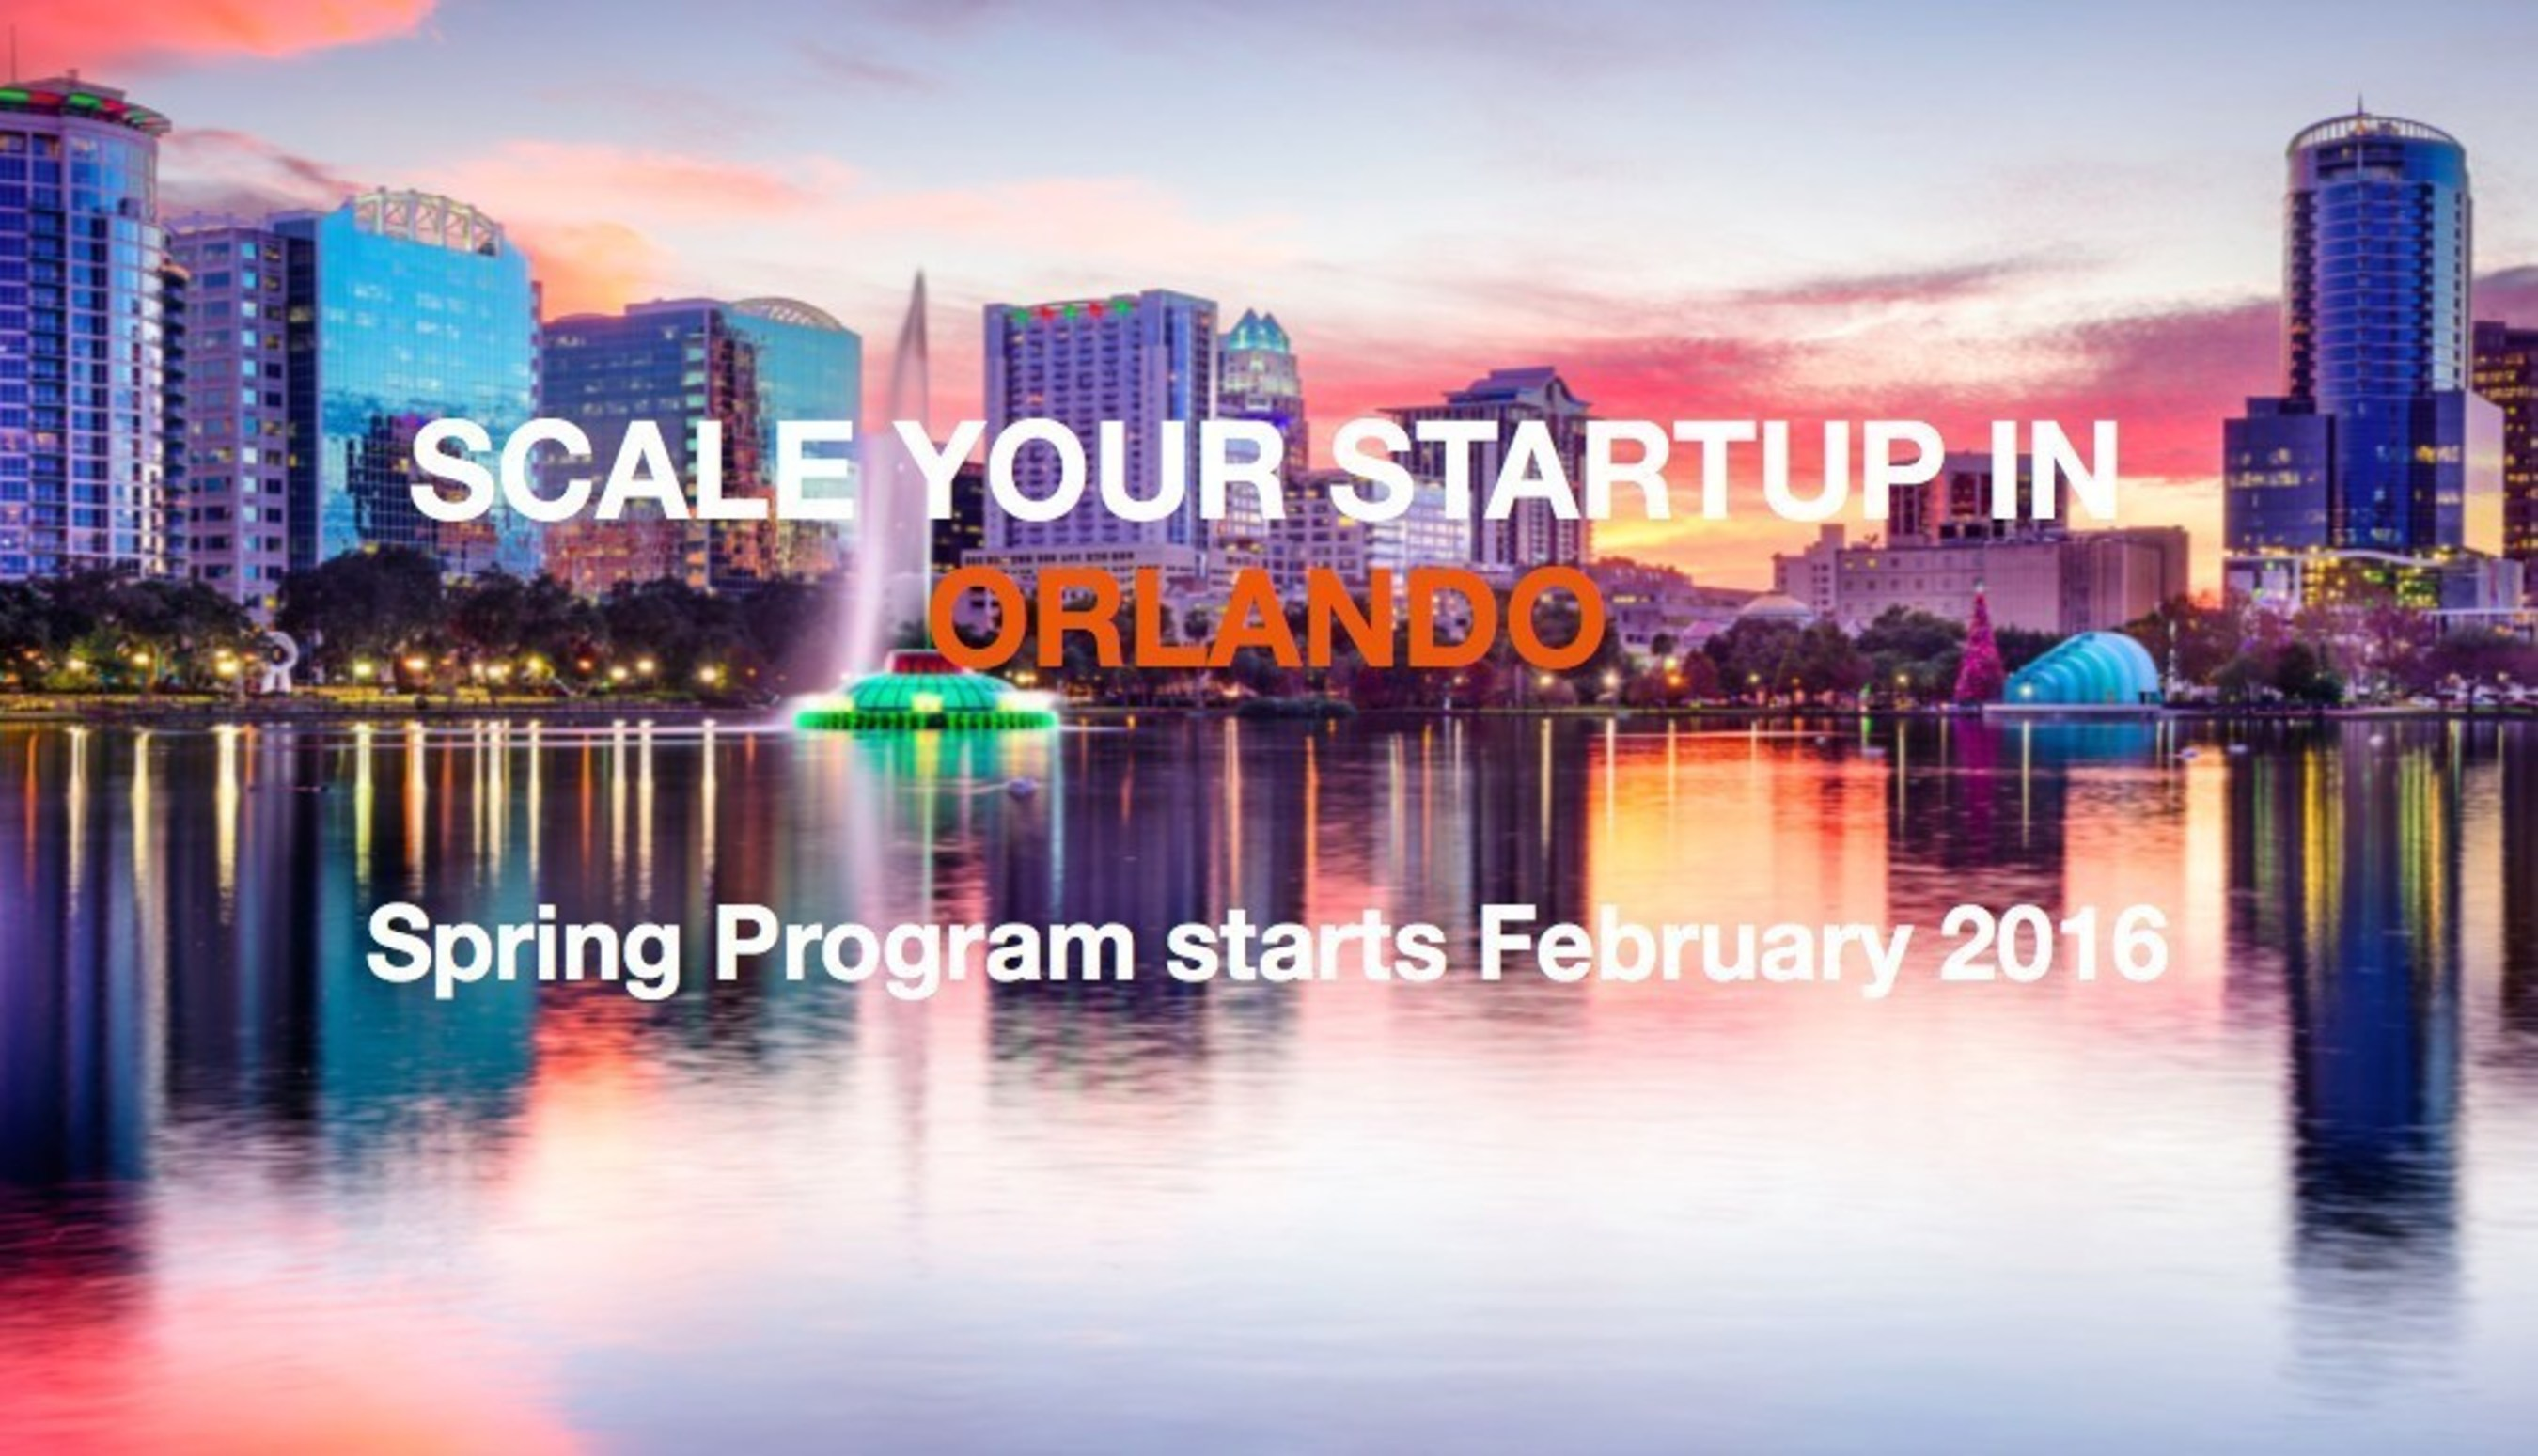 VentureScaleUp Accelerator to Provide Access to Seed Capital and Opens Applications For its Spring